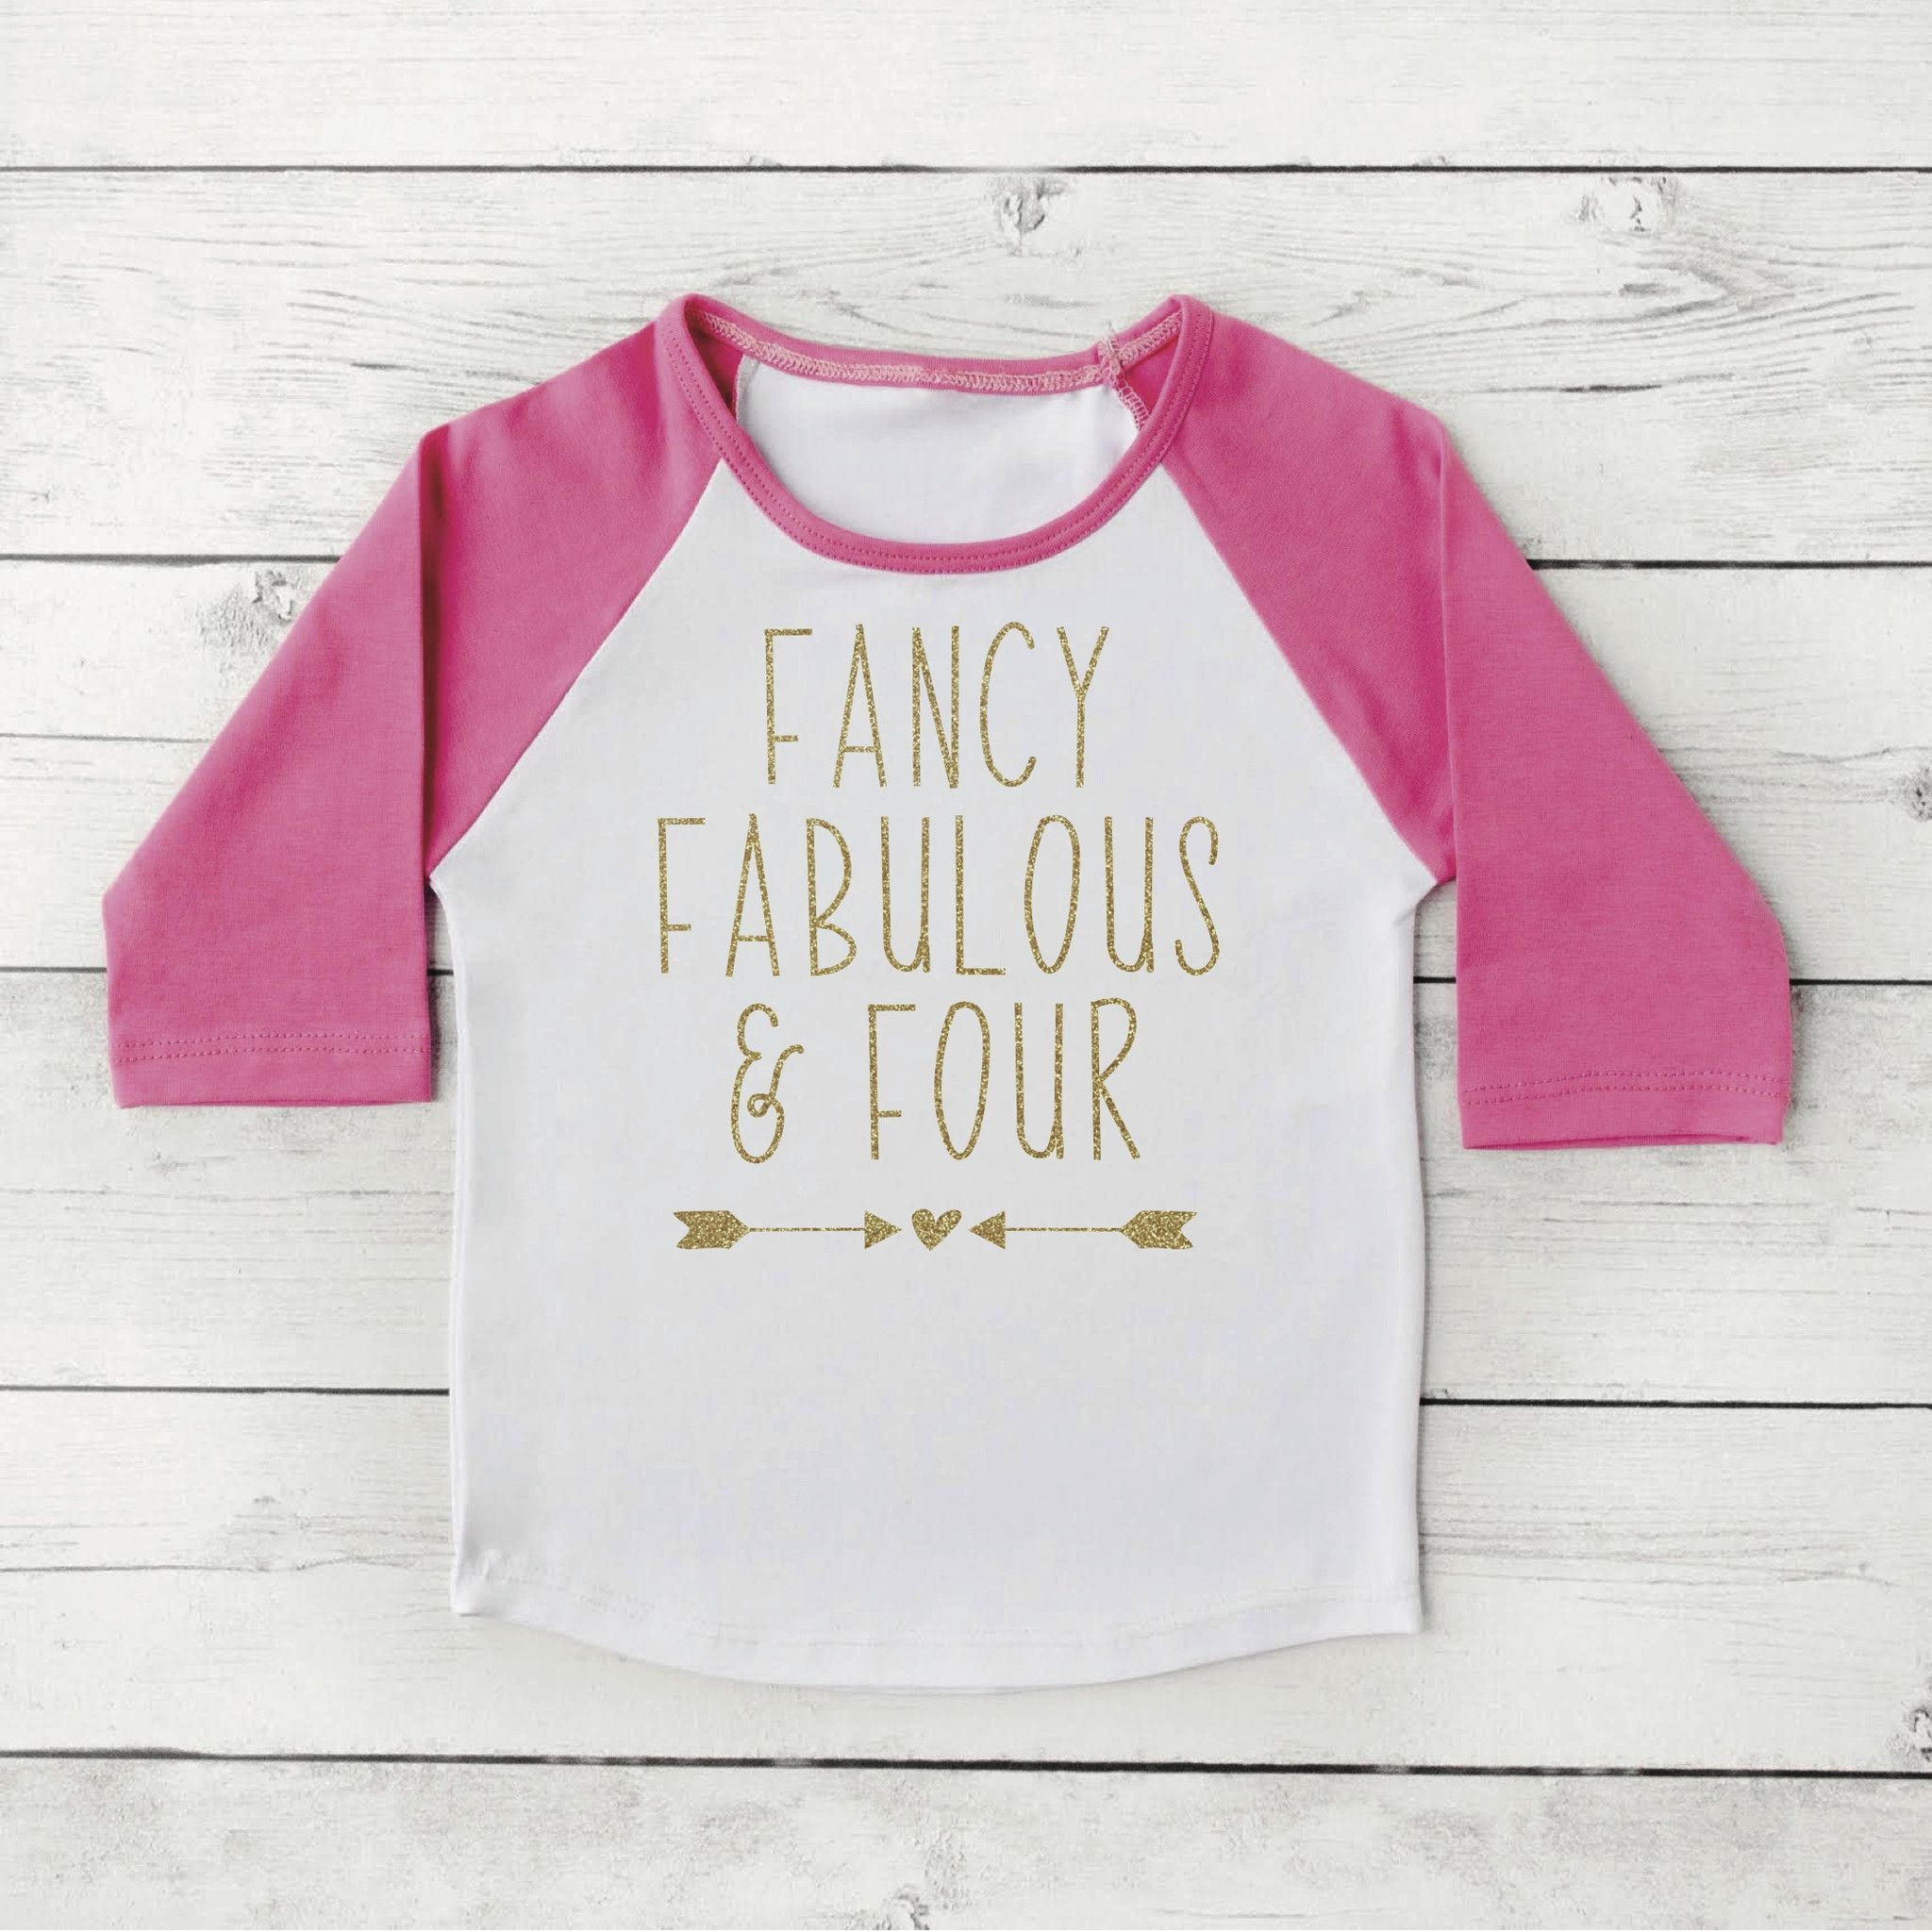 a41811f36 4th Birthday Shirt Four and Fabulous Four Year Old Shirt Fancy Fabulous and  Four Girl Fourth Birthday Outfit 246